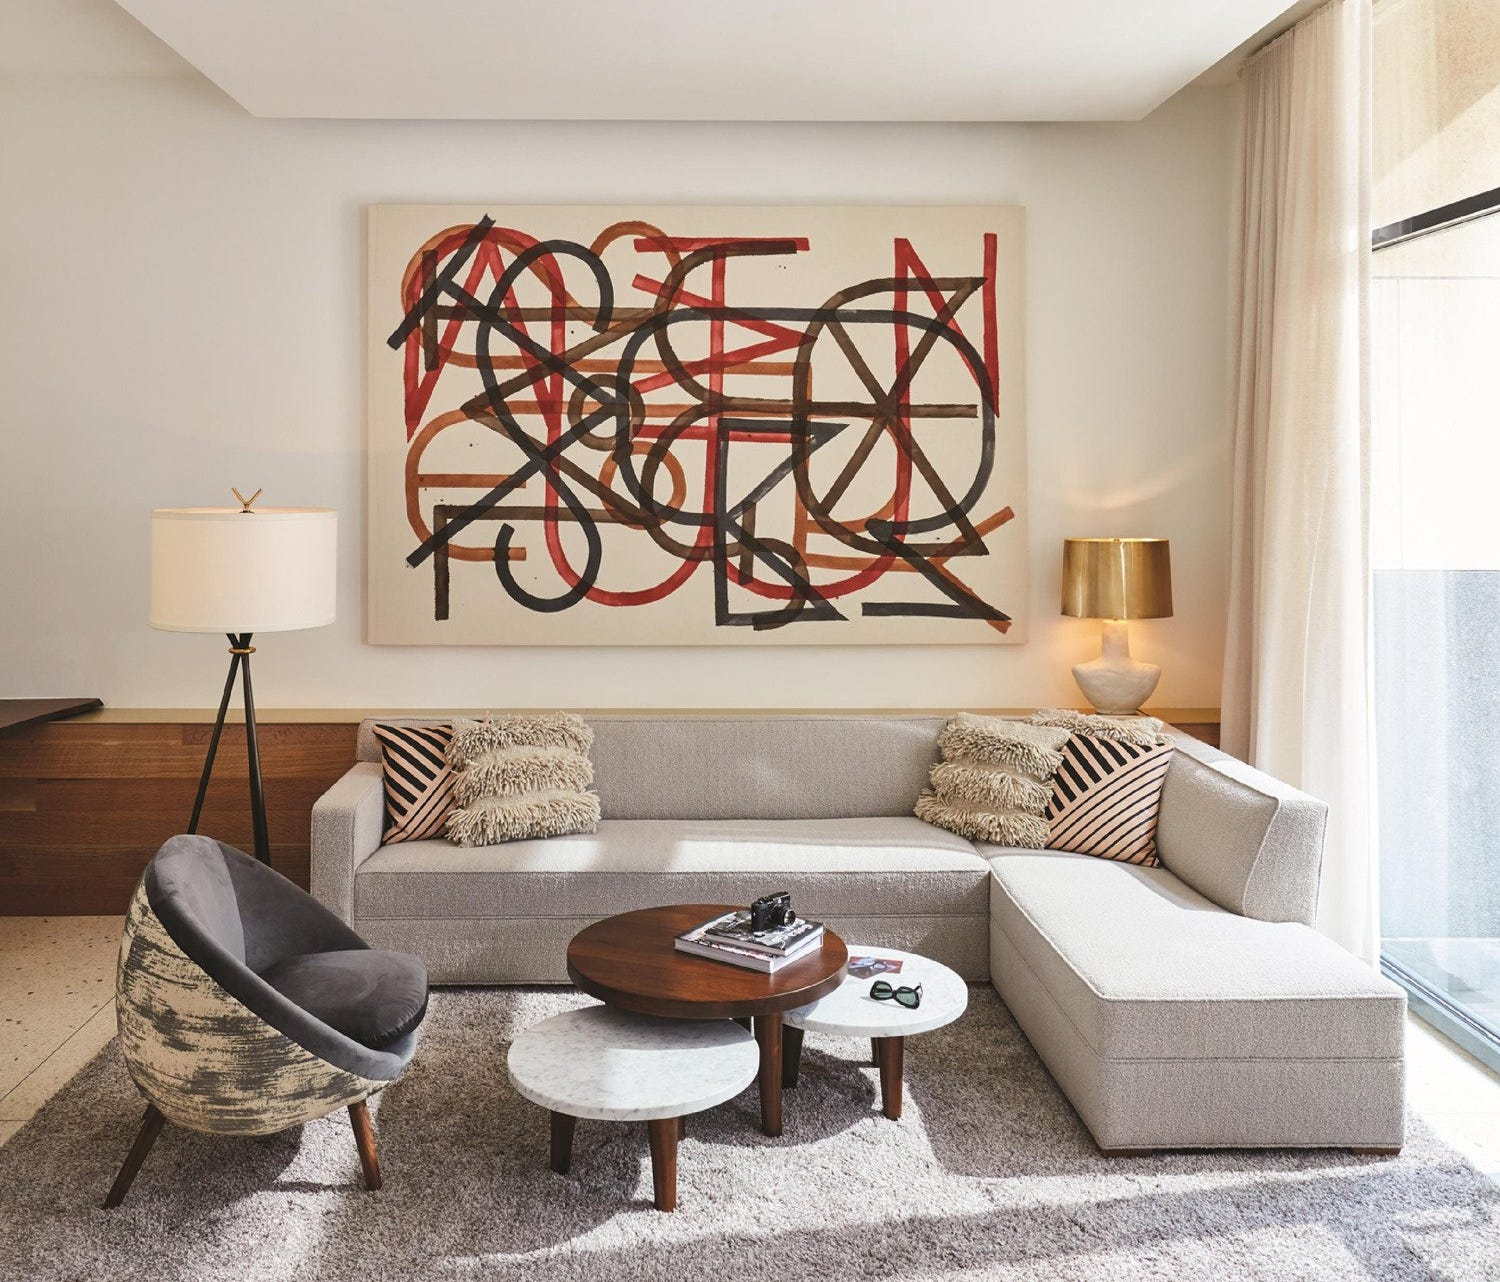 The James Chicago-Magnificent Mile is priced from $150 per night.